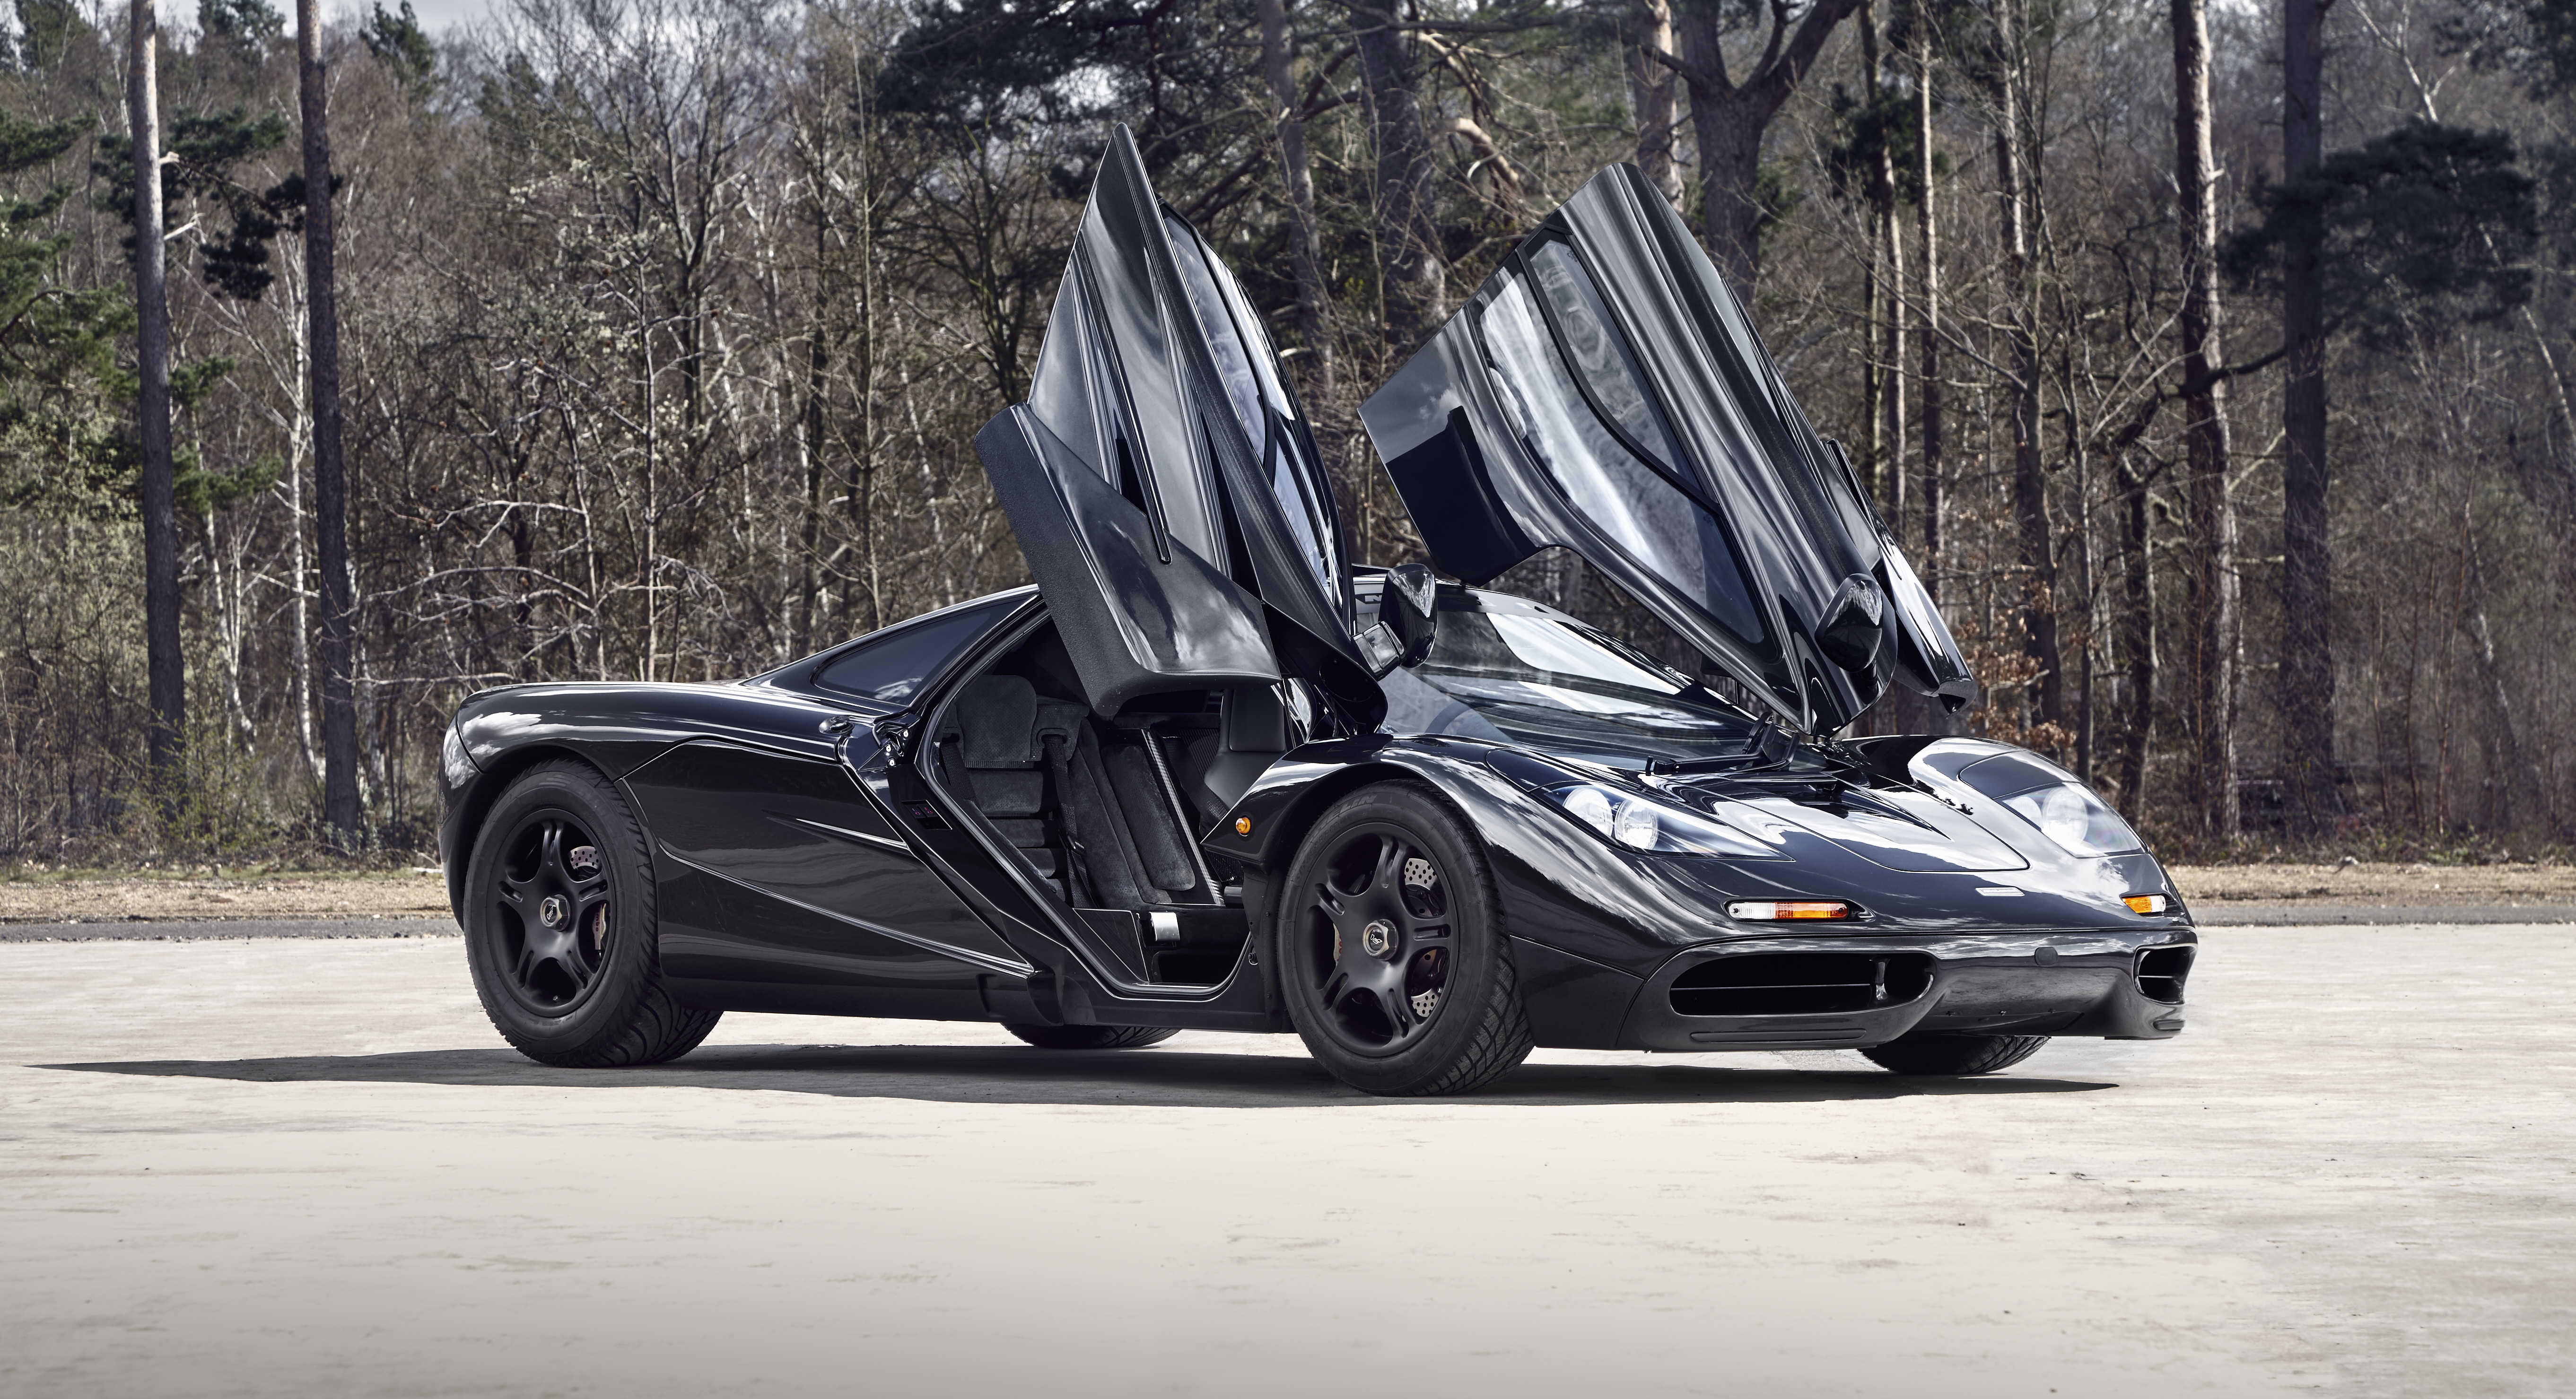 Mclaren F1 Latest News Reviews Specifications Prices Photos And